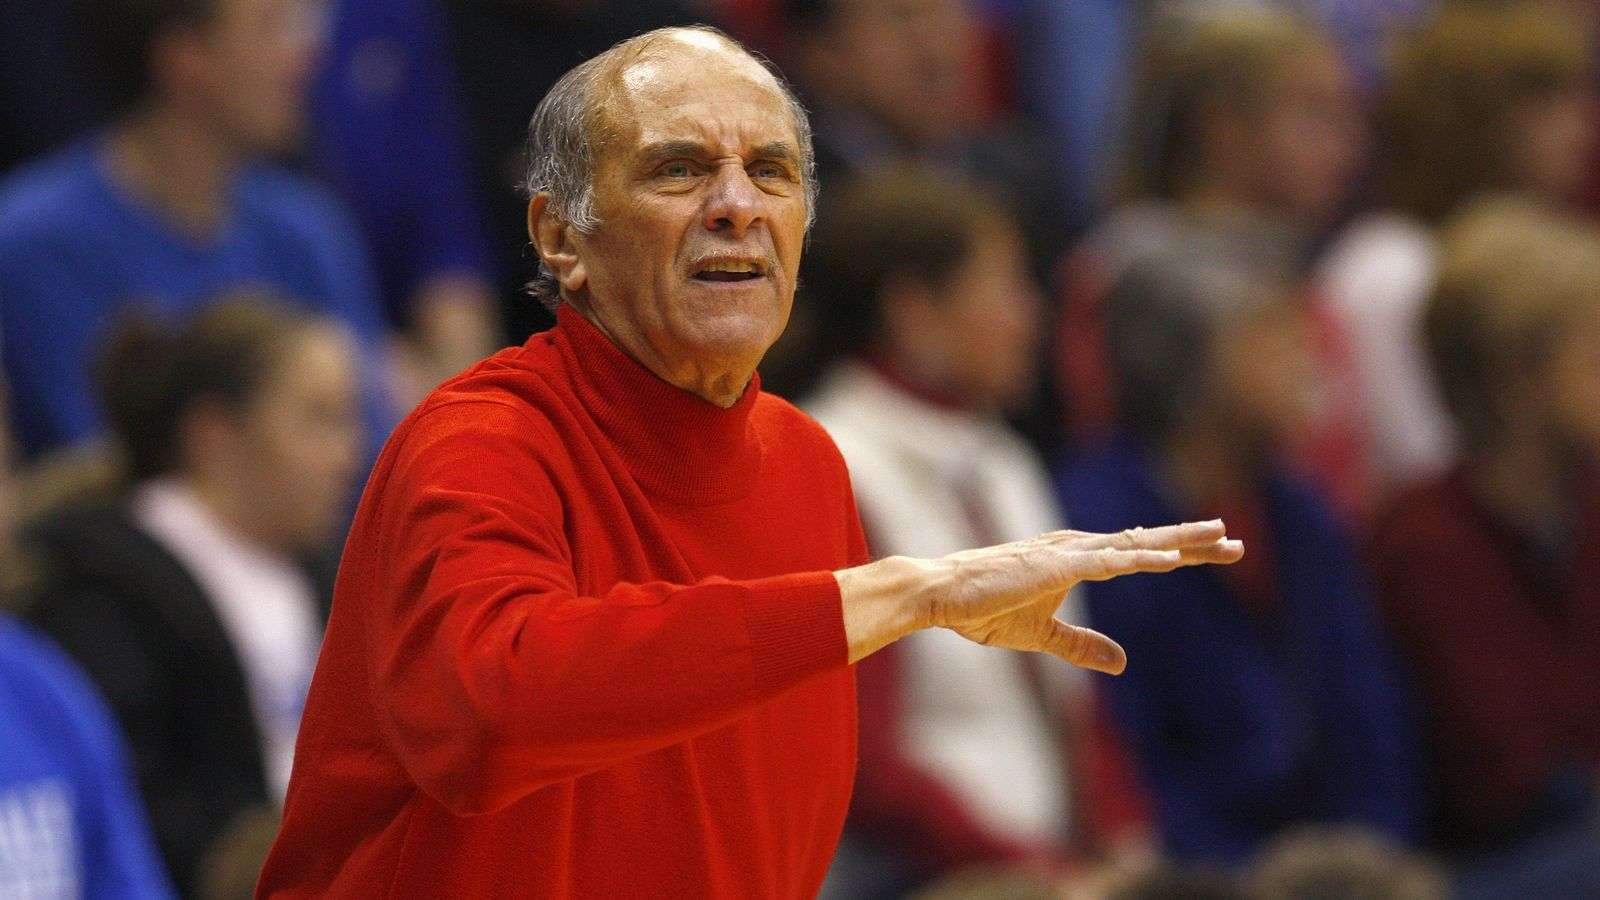 Miami RedHawks to retire No 10 to honor the legacy of Charles